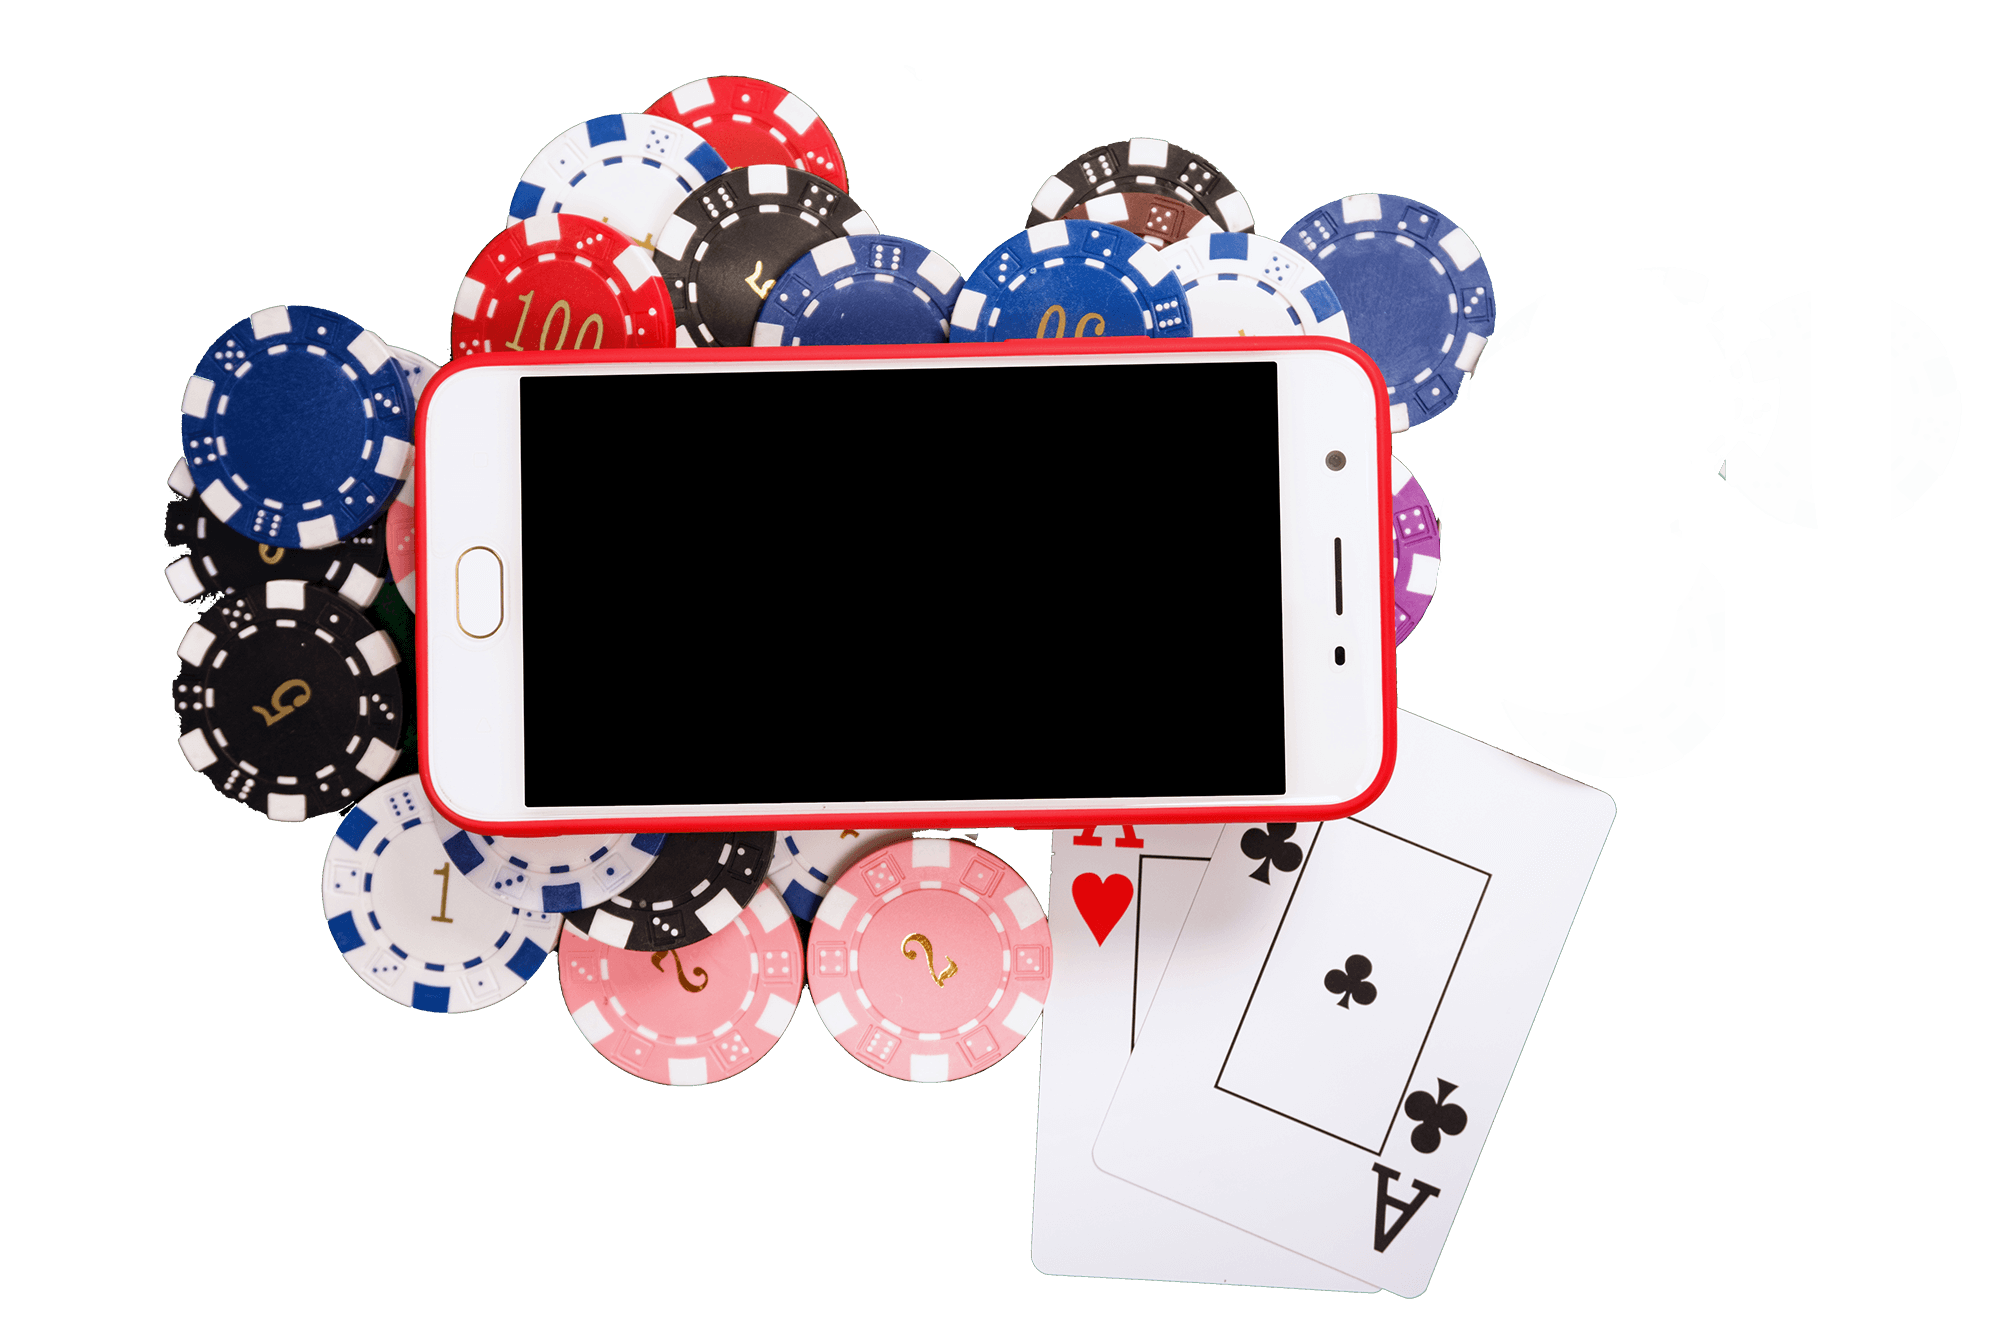 An image of mobile phone with blackjack